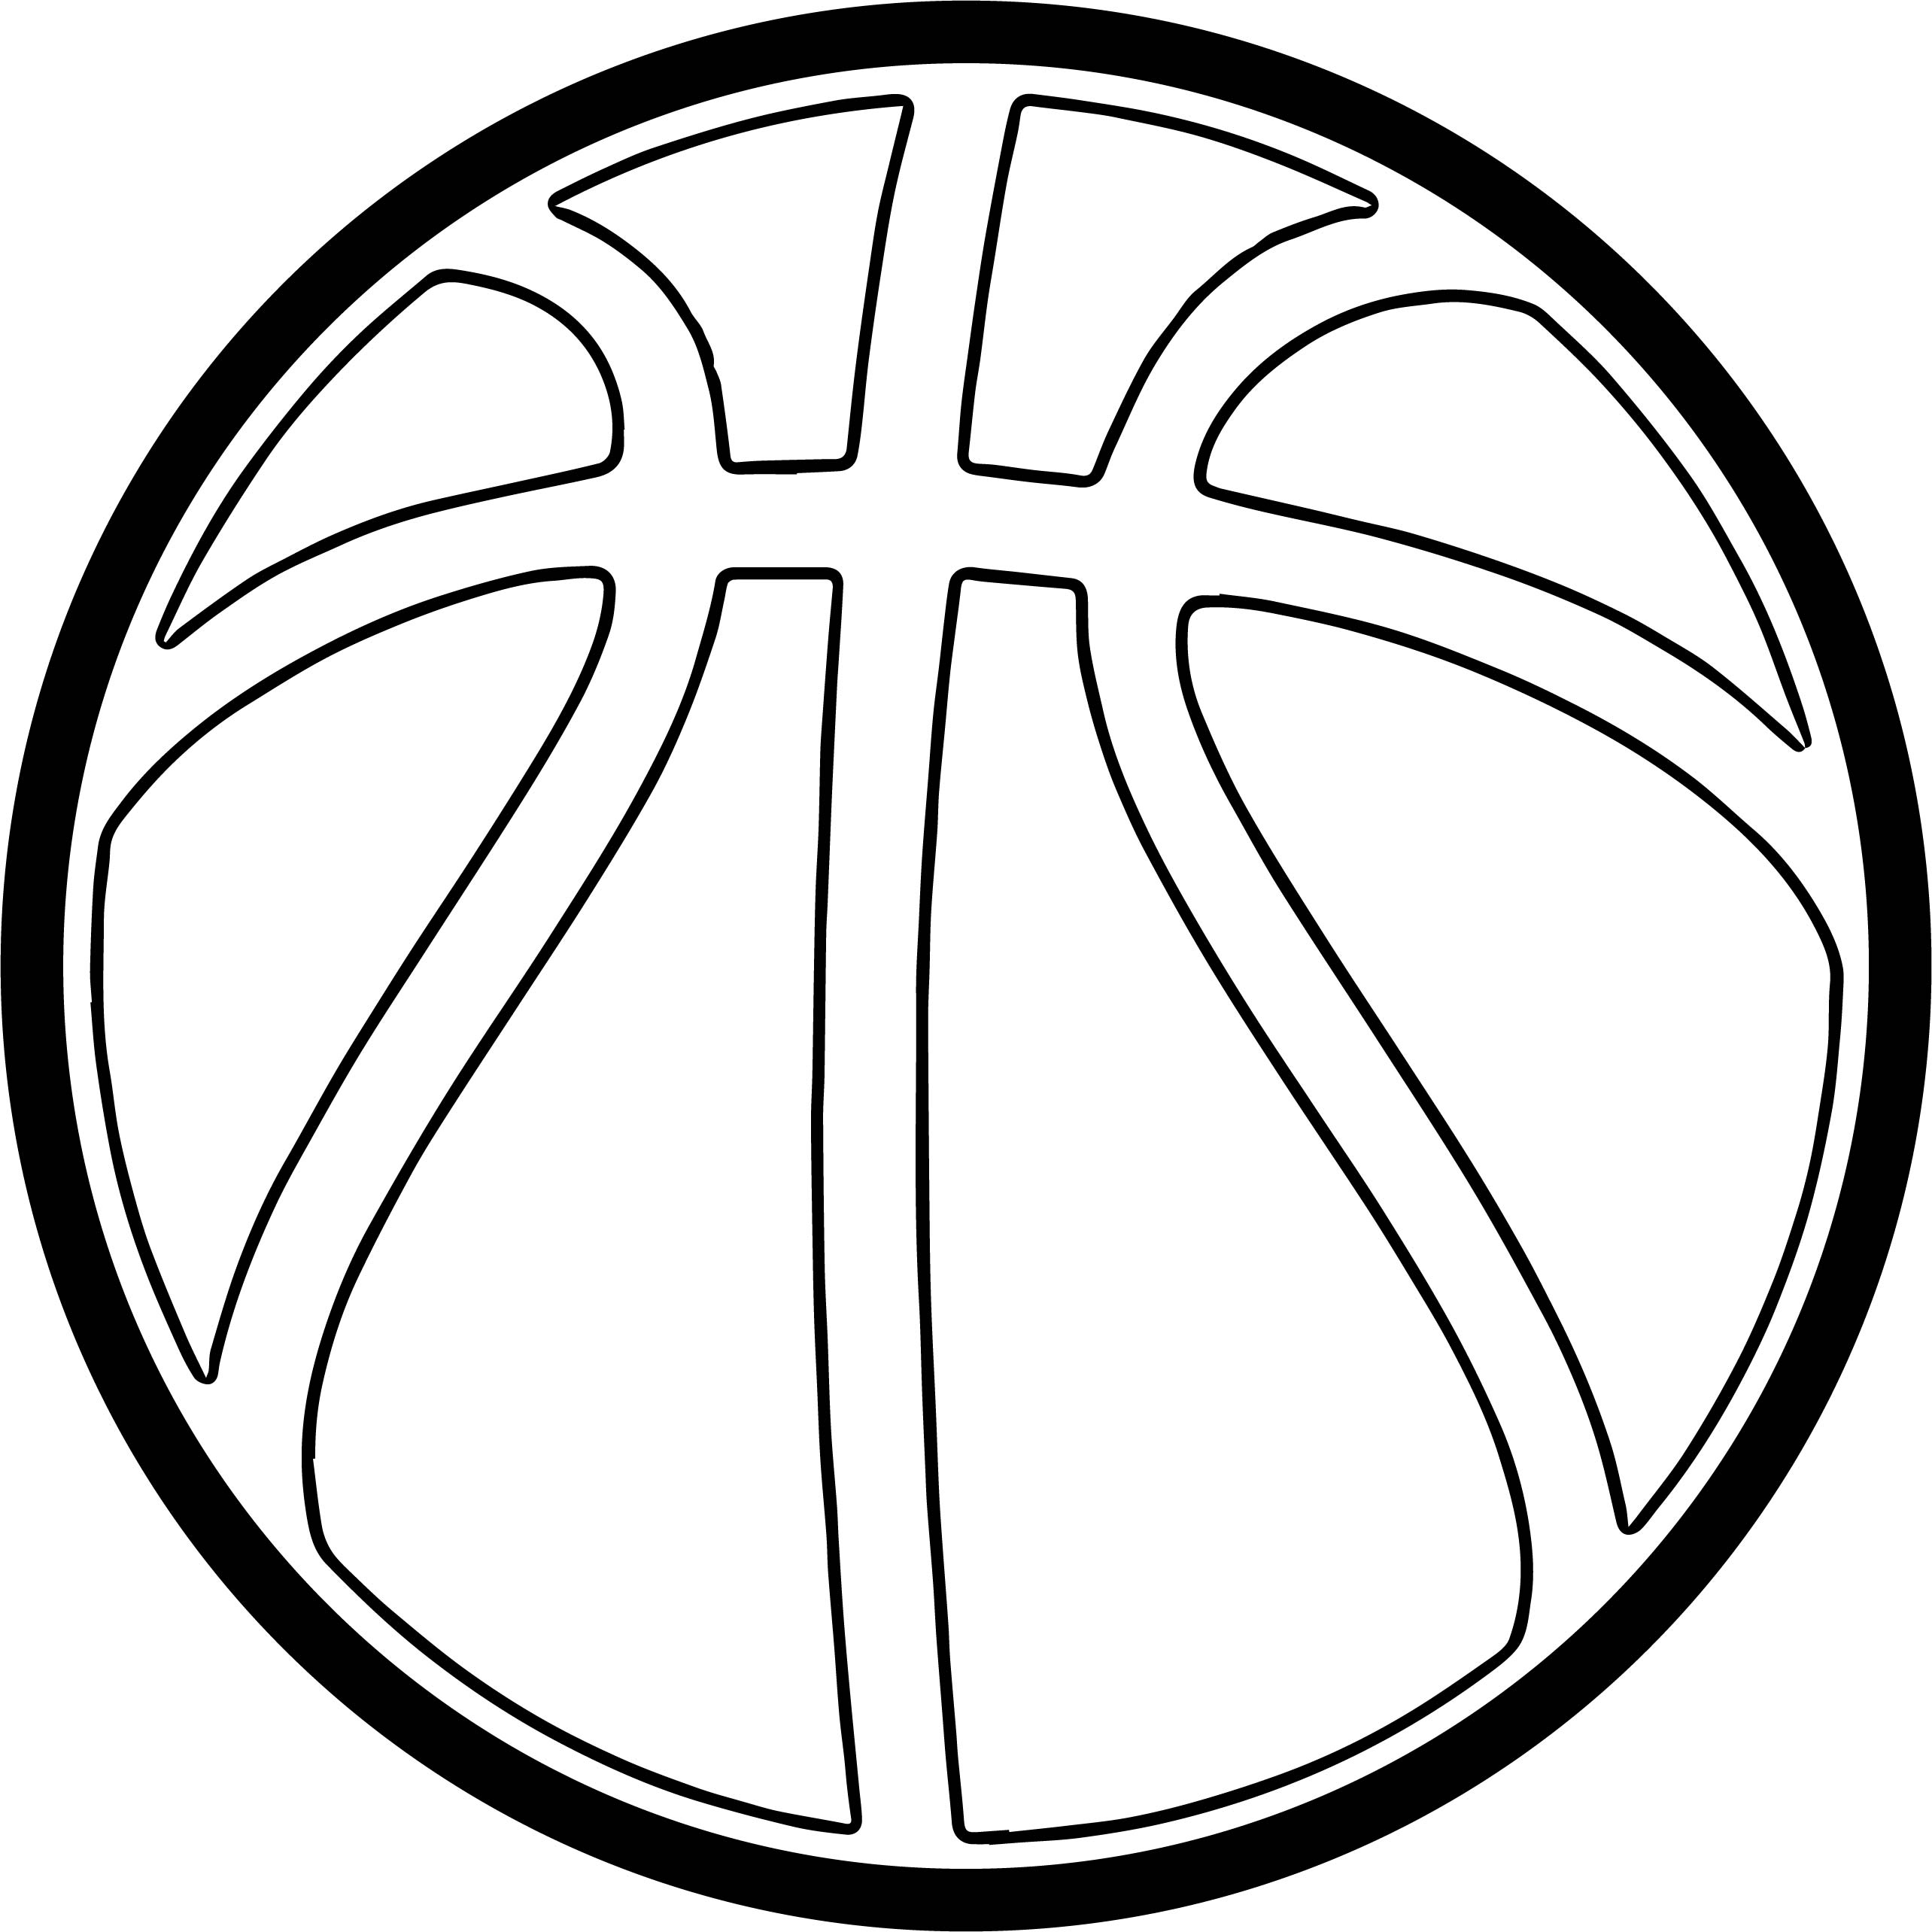 free coloring pages unc logo | Basketball Outline | Free download best Basketball Outline ...